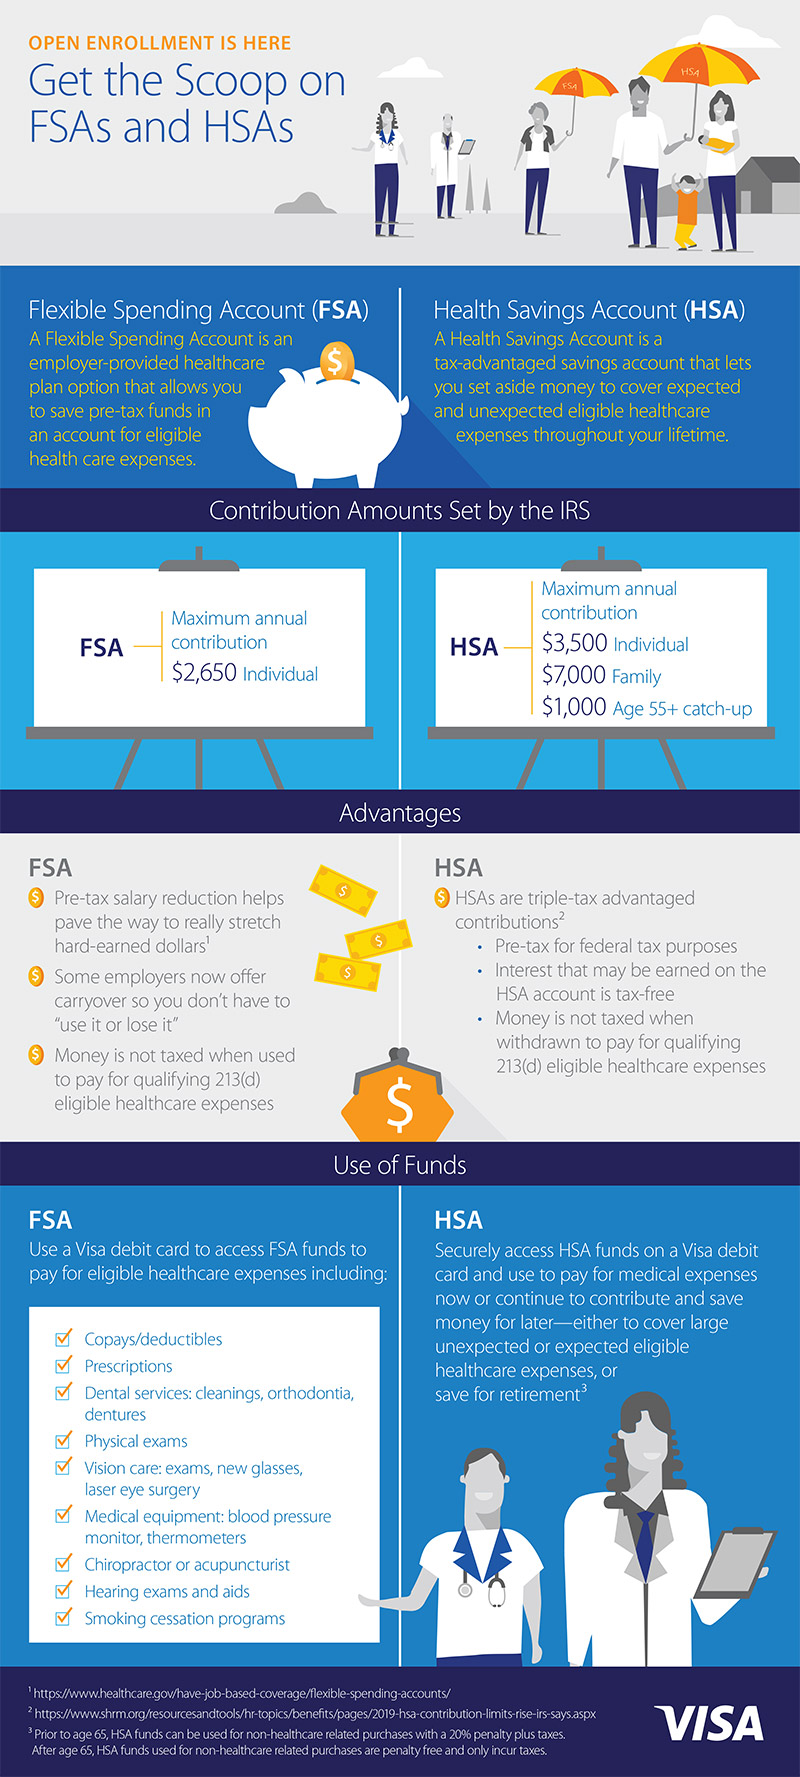 Why do consumers leave so much FSA and HSA money on the